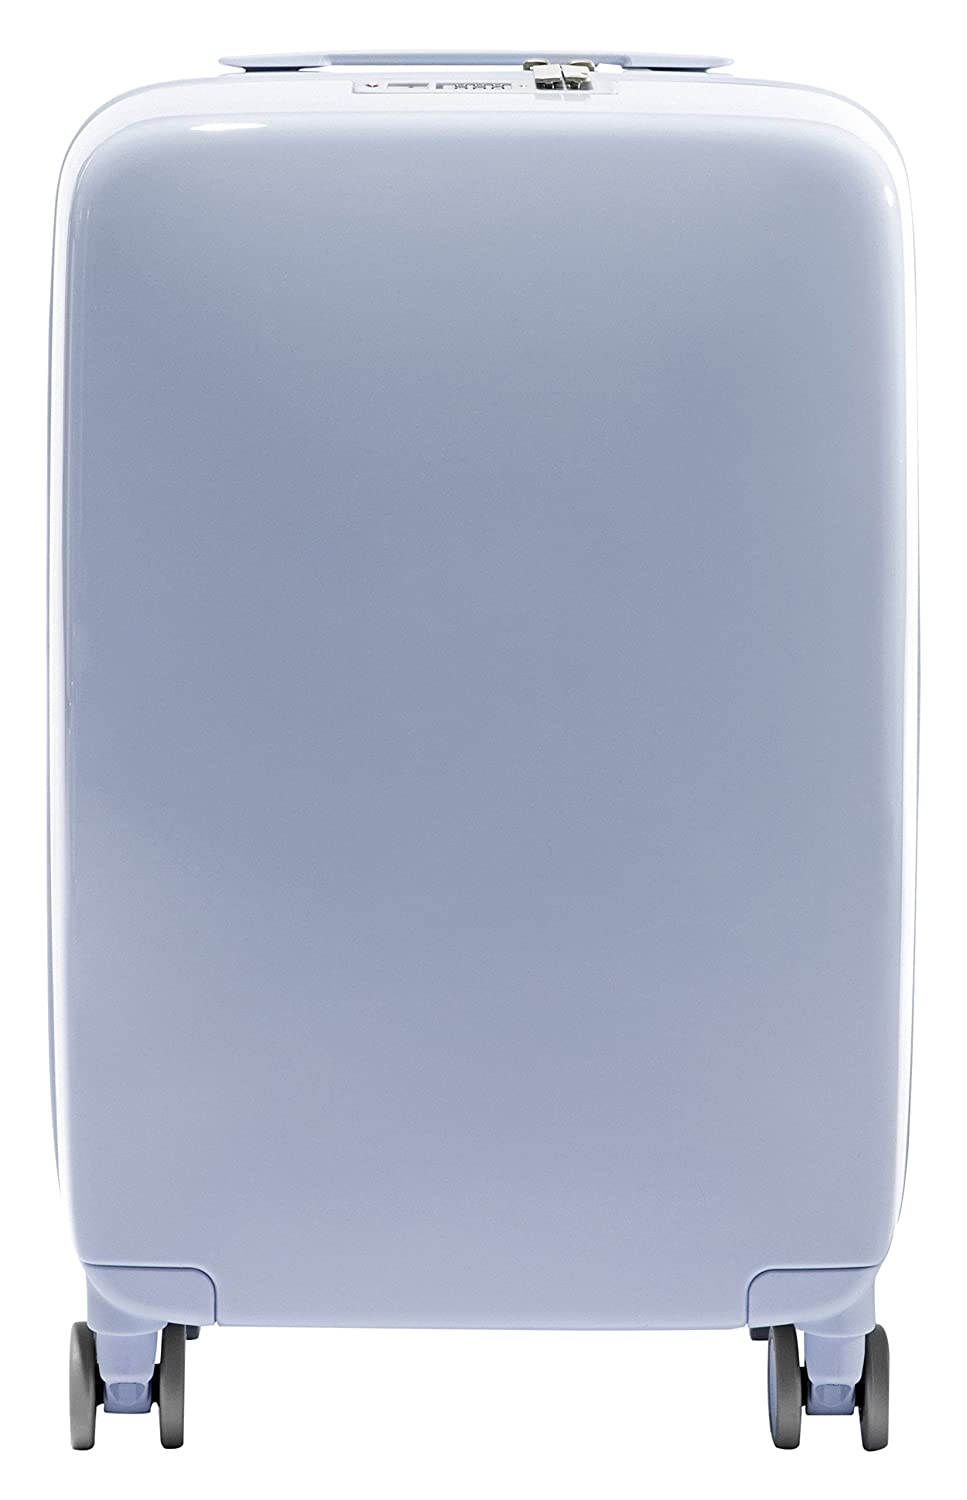 Raden (レイデン) A22 機内持ち込み用キャリーバッグ One Size Light Blue Gloss B01N90OSL9